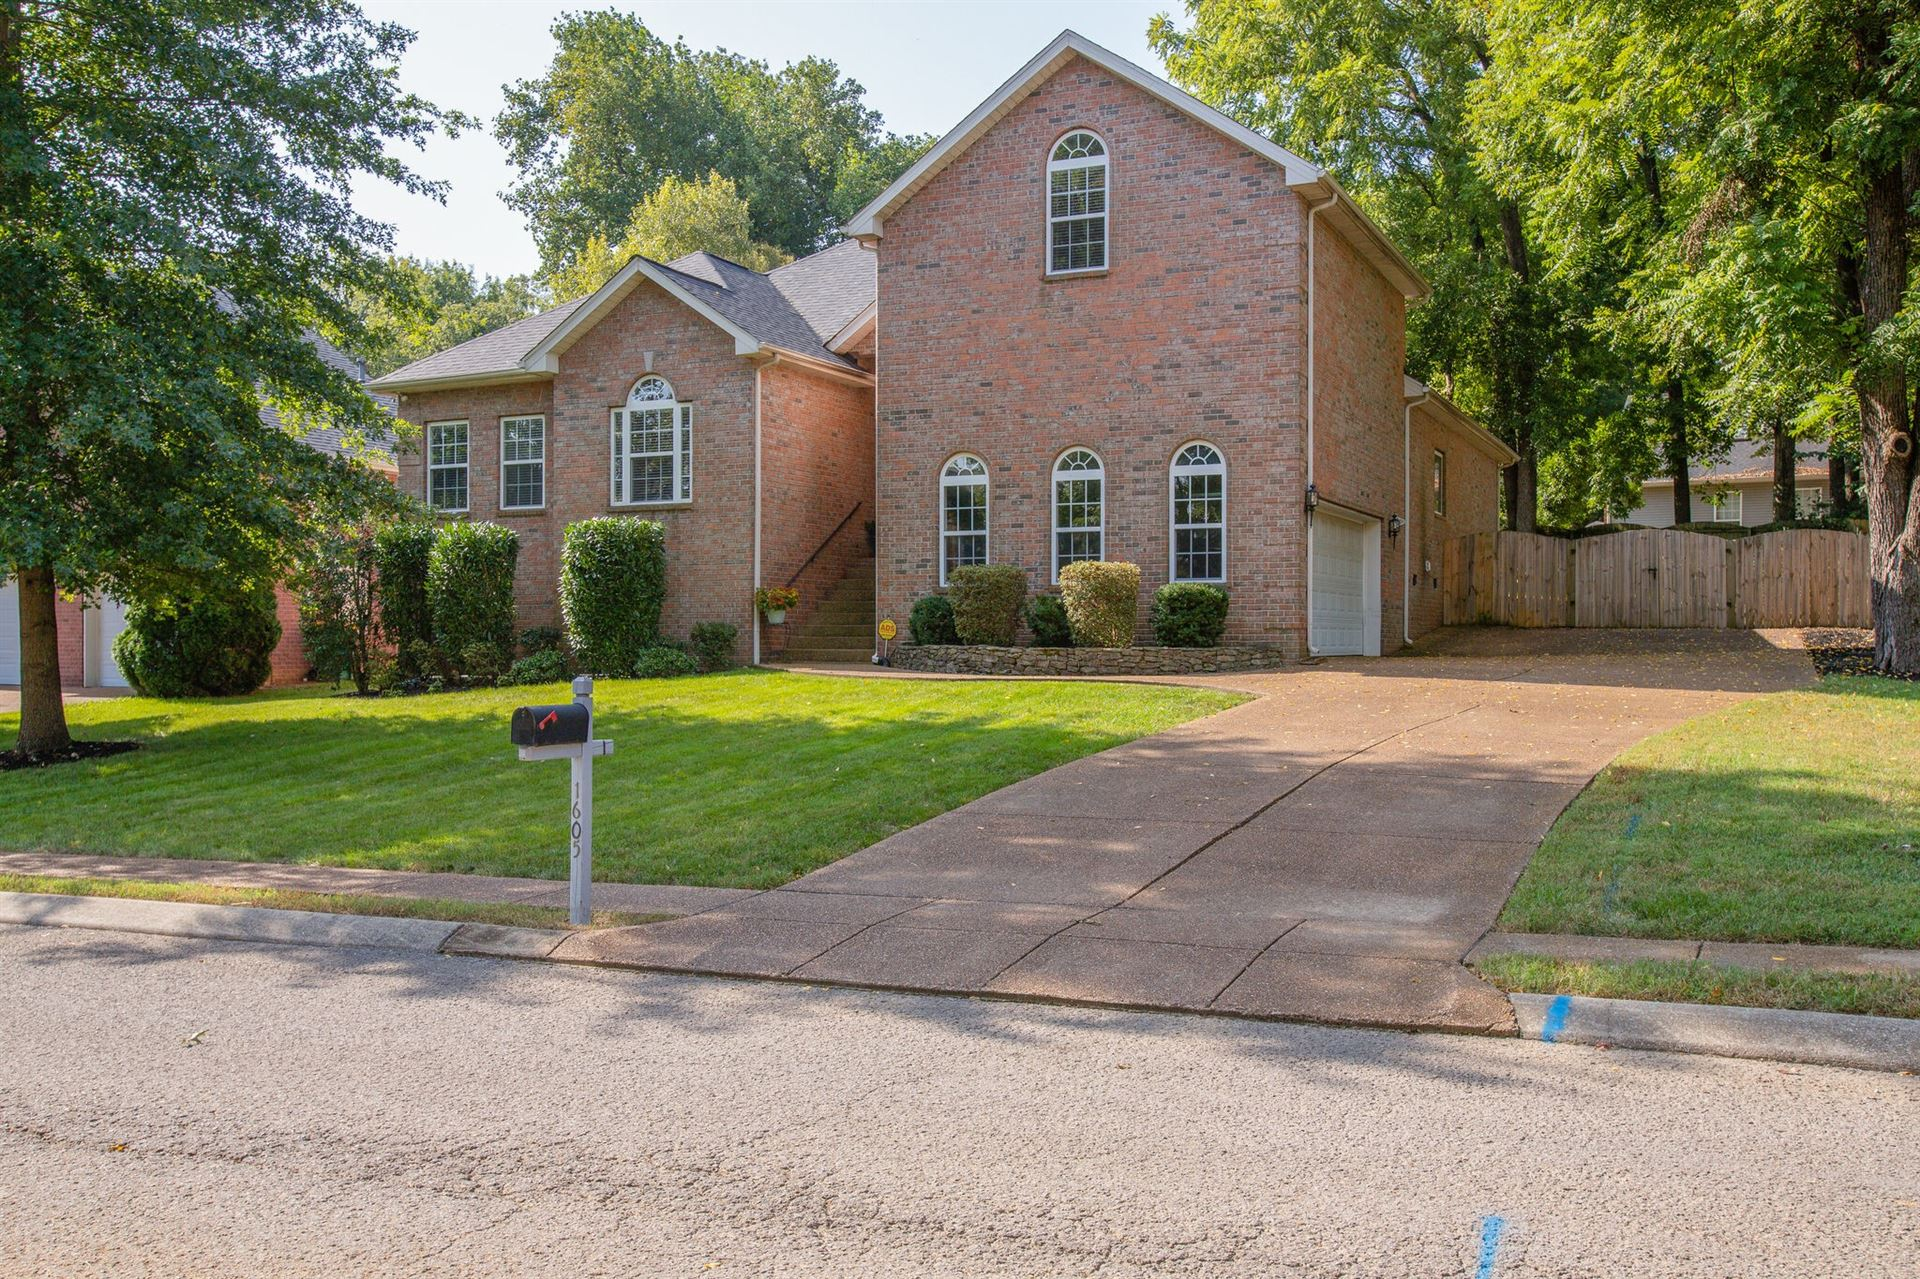 Photo of 1605 Inverness Dr, Spring Hill, TN 37174 (MLS # 2291649)